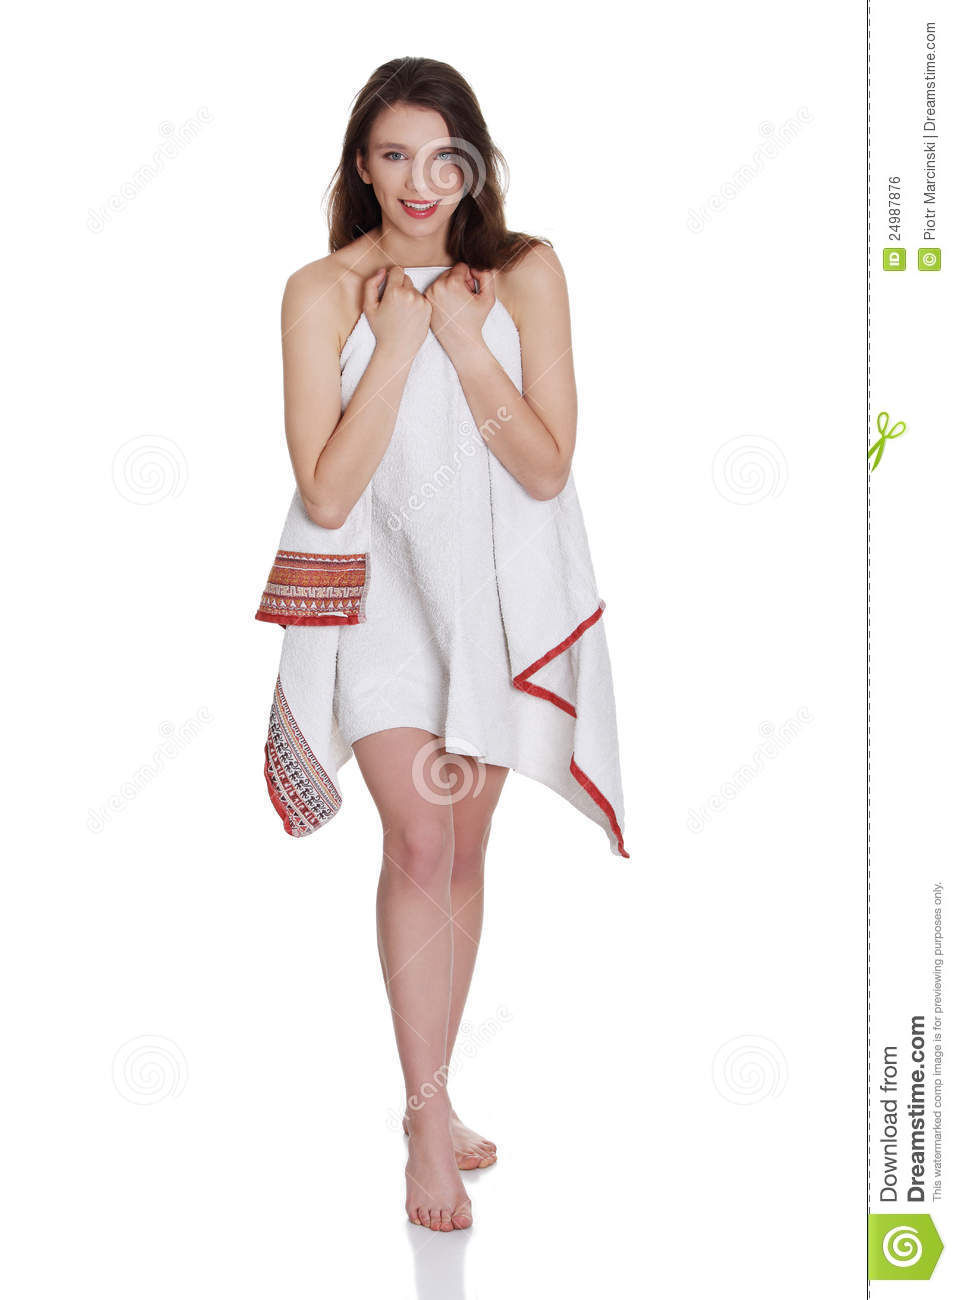 Young Beautiful Teen Woman With Towel Stock Photo - Image of care ... f073748ea